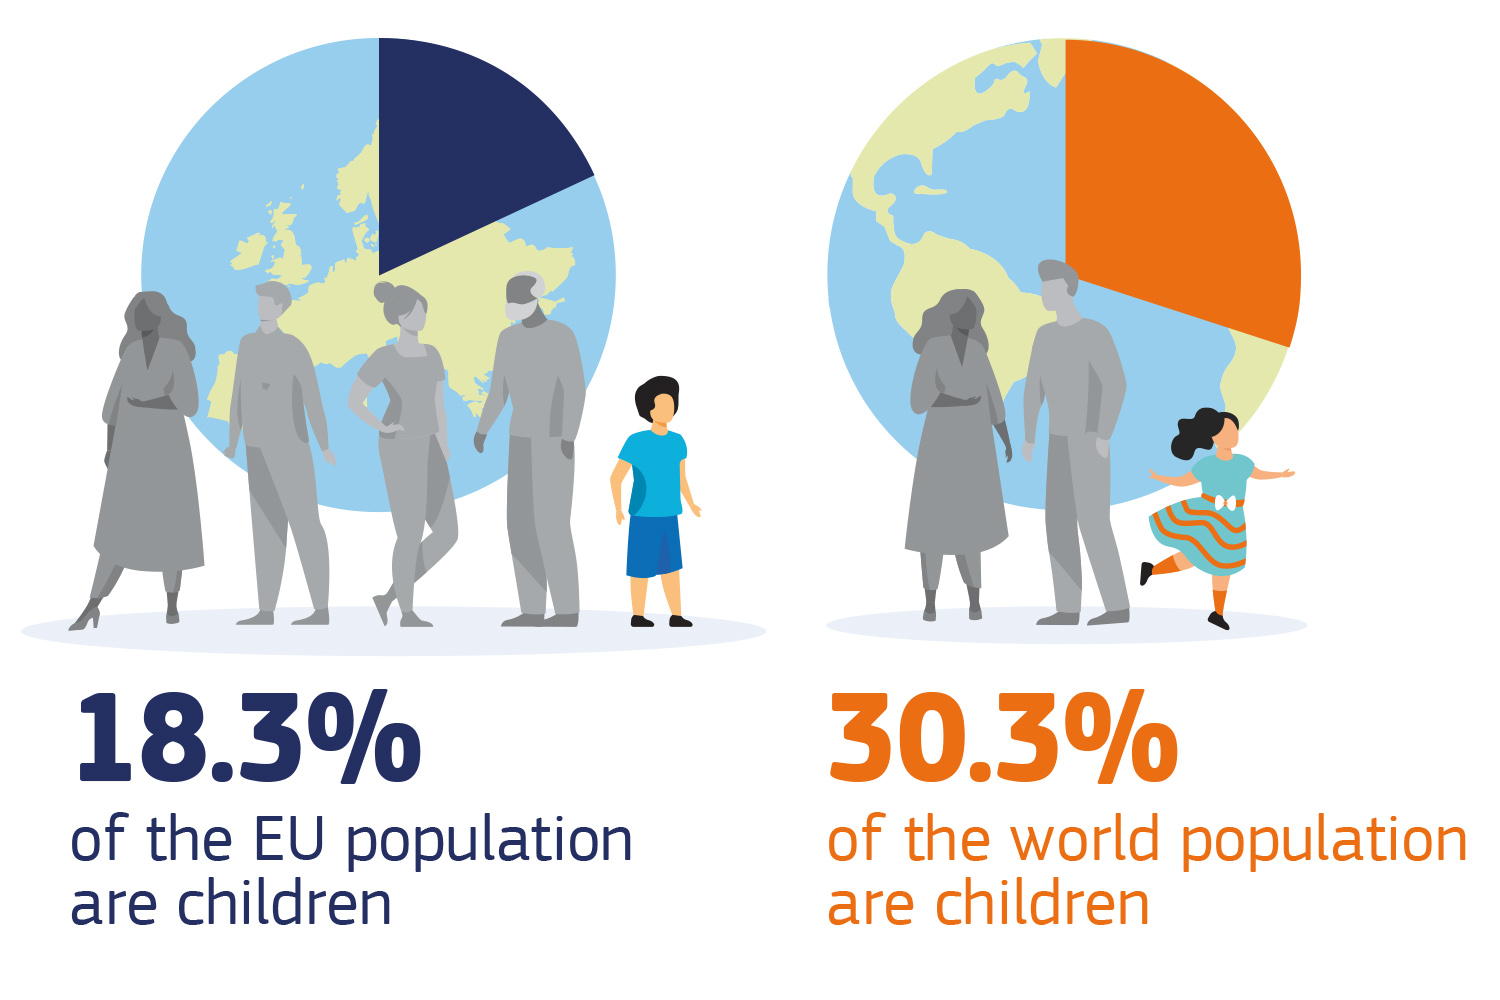 18.3% of the EU population and 30.3% of the world population are children